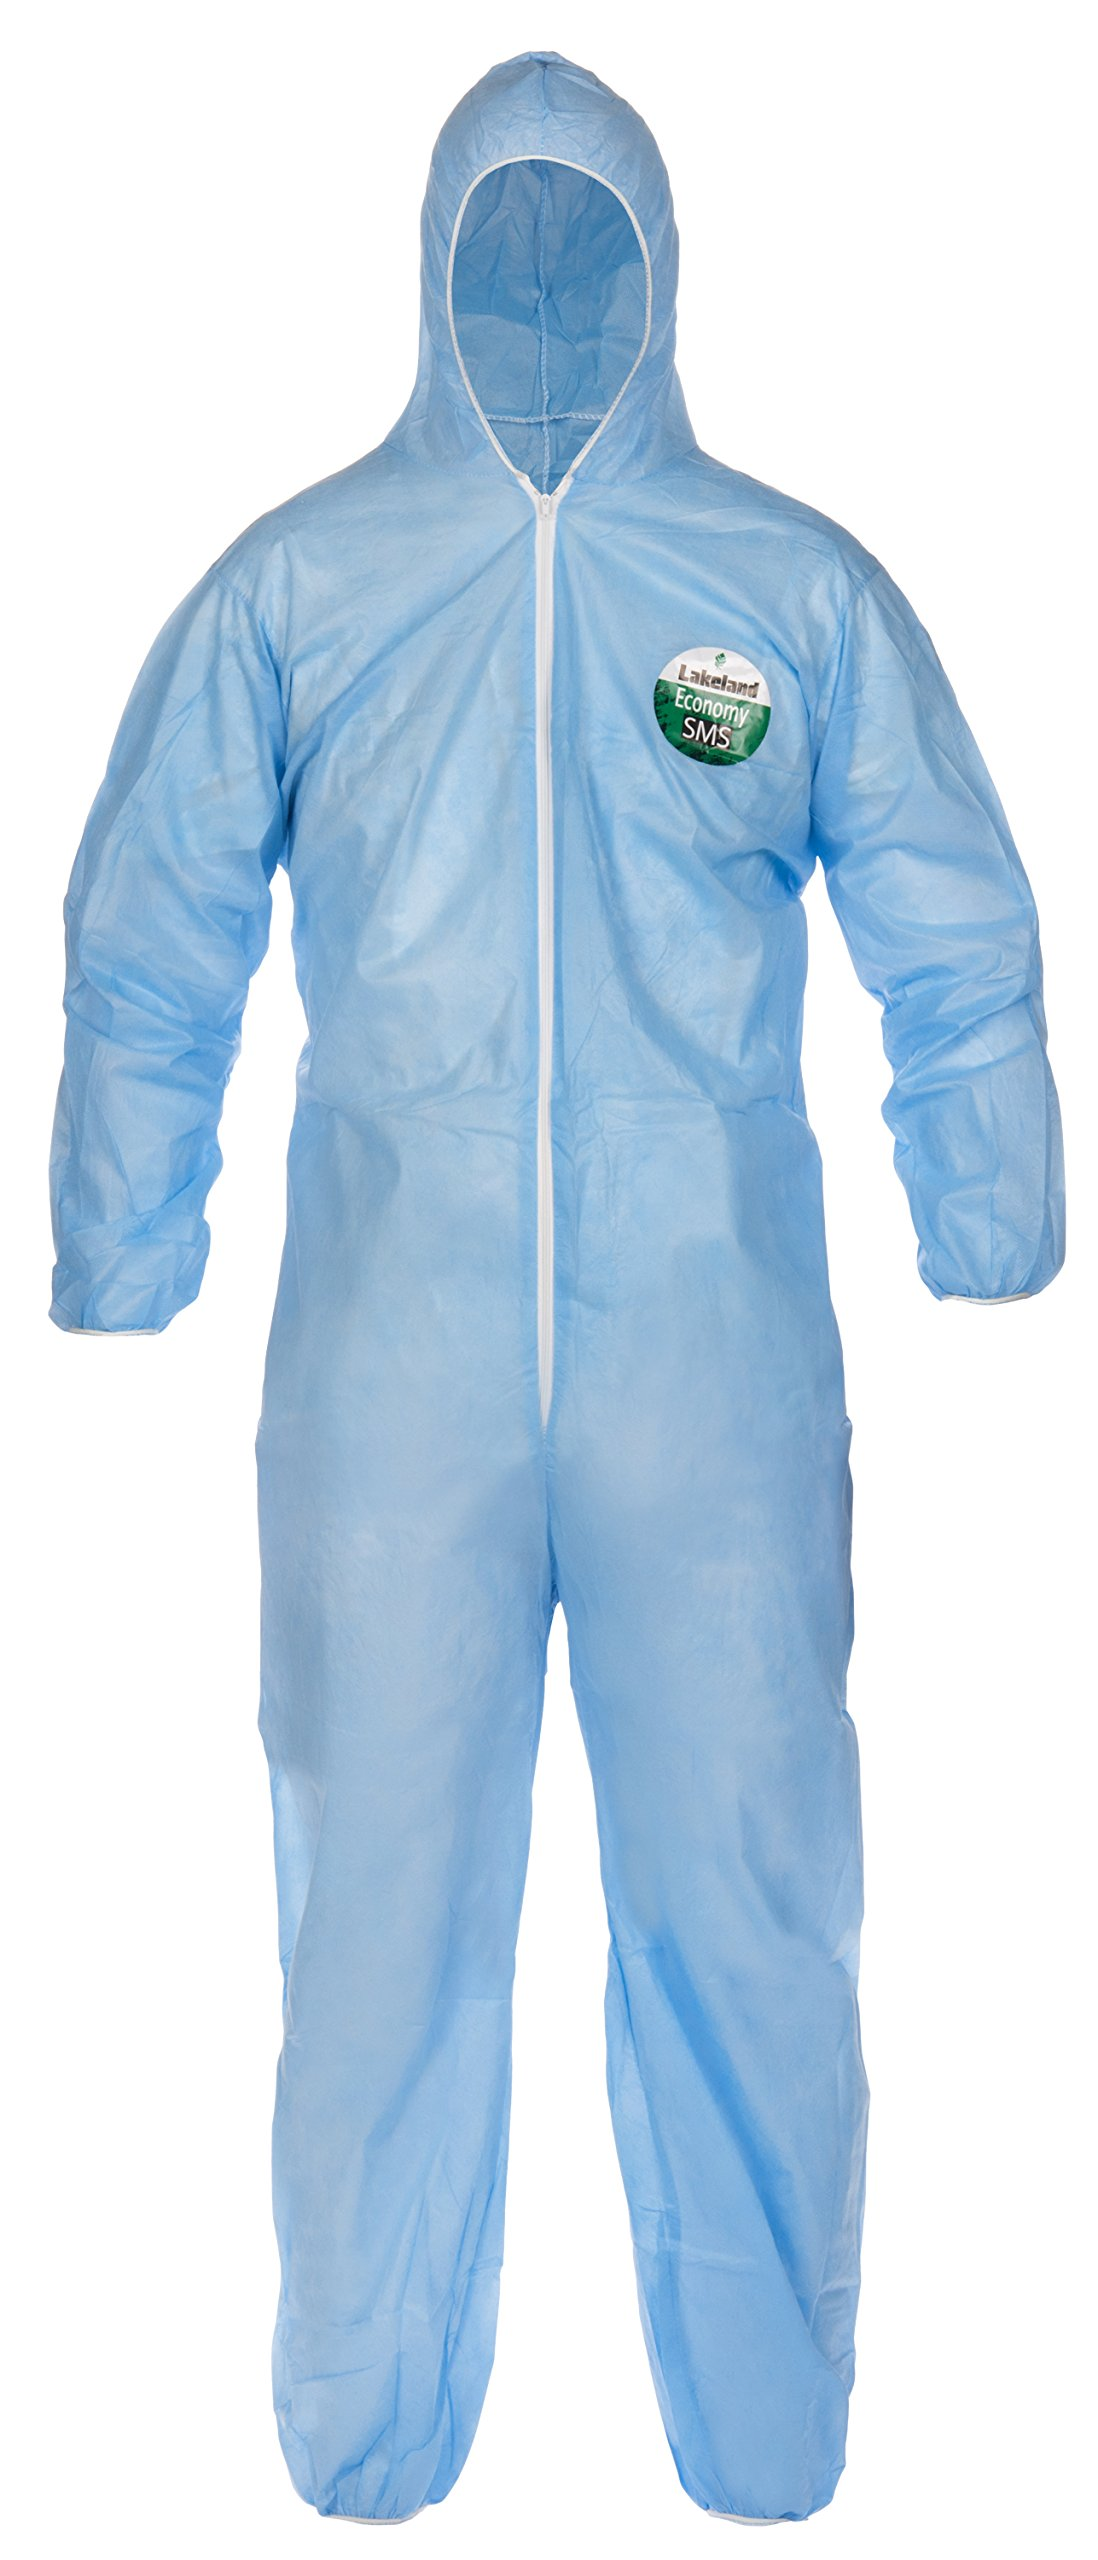 Lakeland SafeGard Economy SMS Coverall with Hood, Disposable, Elastic Cuff, 2X-Large, Blue (Case of 25)